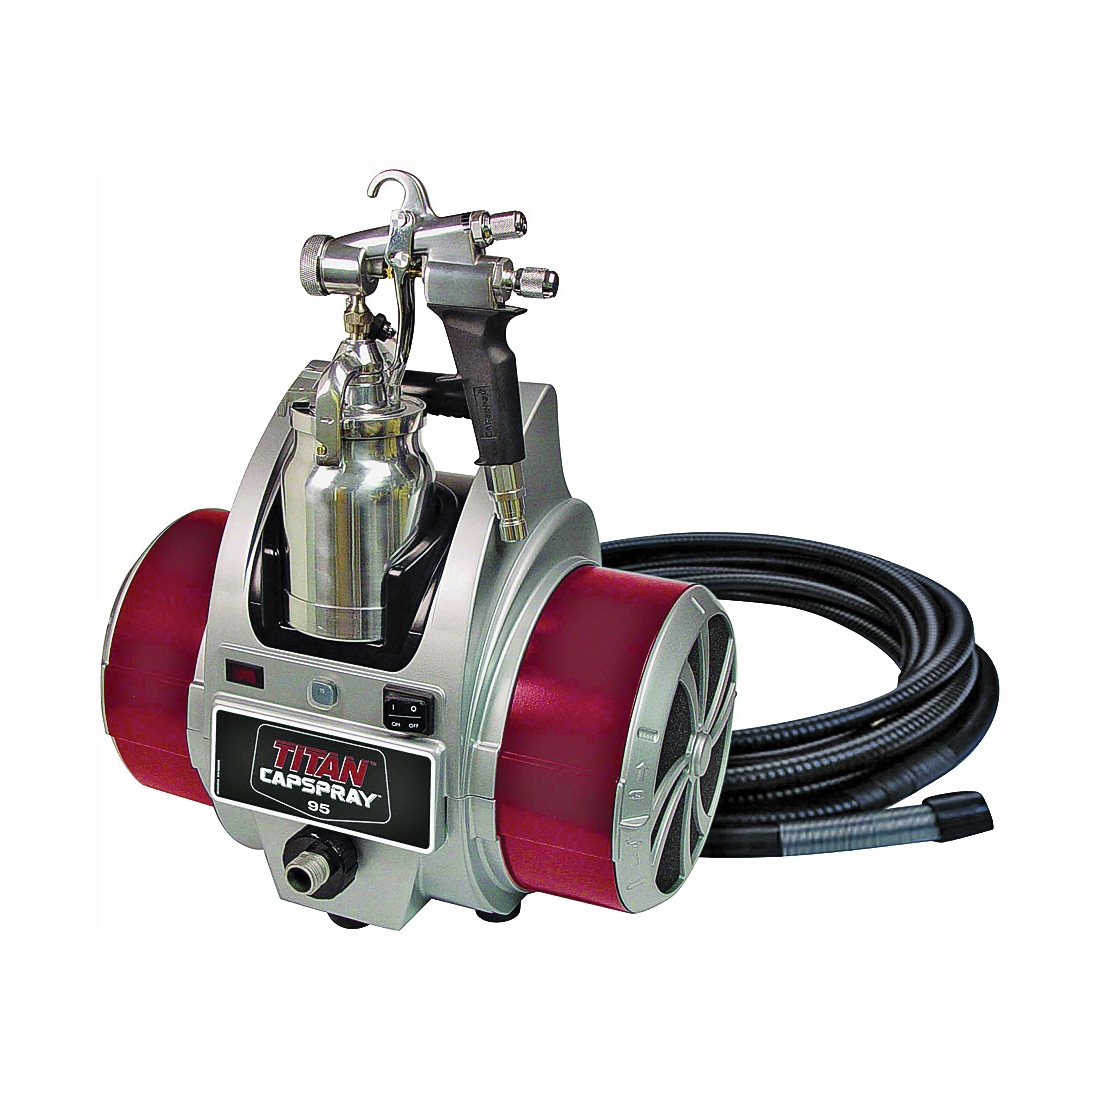 Picture of Titan 0524032 HVLP Paint Sprayer, 120 VAC, 13.8 A, 1 qt Tank, 0.051 in Nozzle, 12 in Pattern, 30 ft L Hose